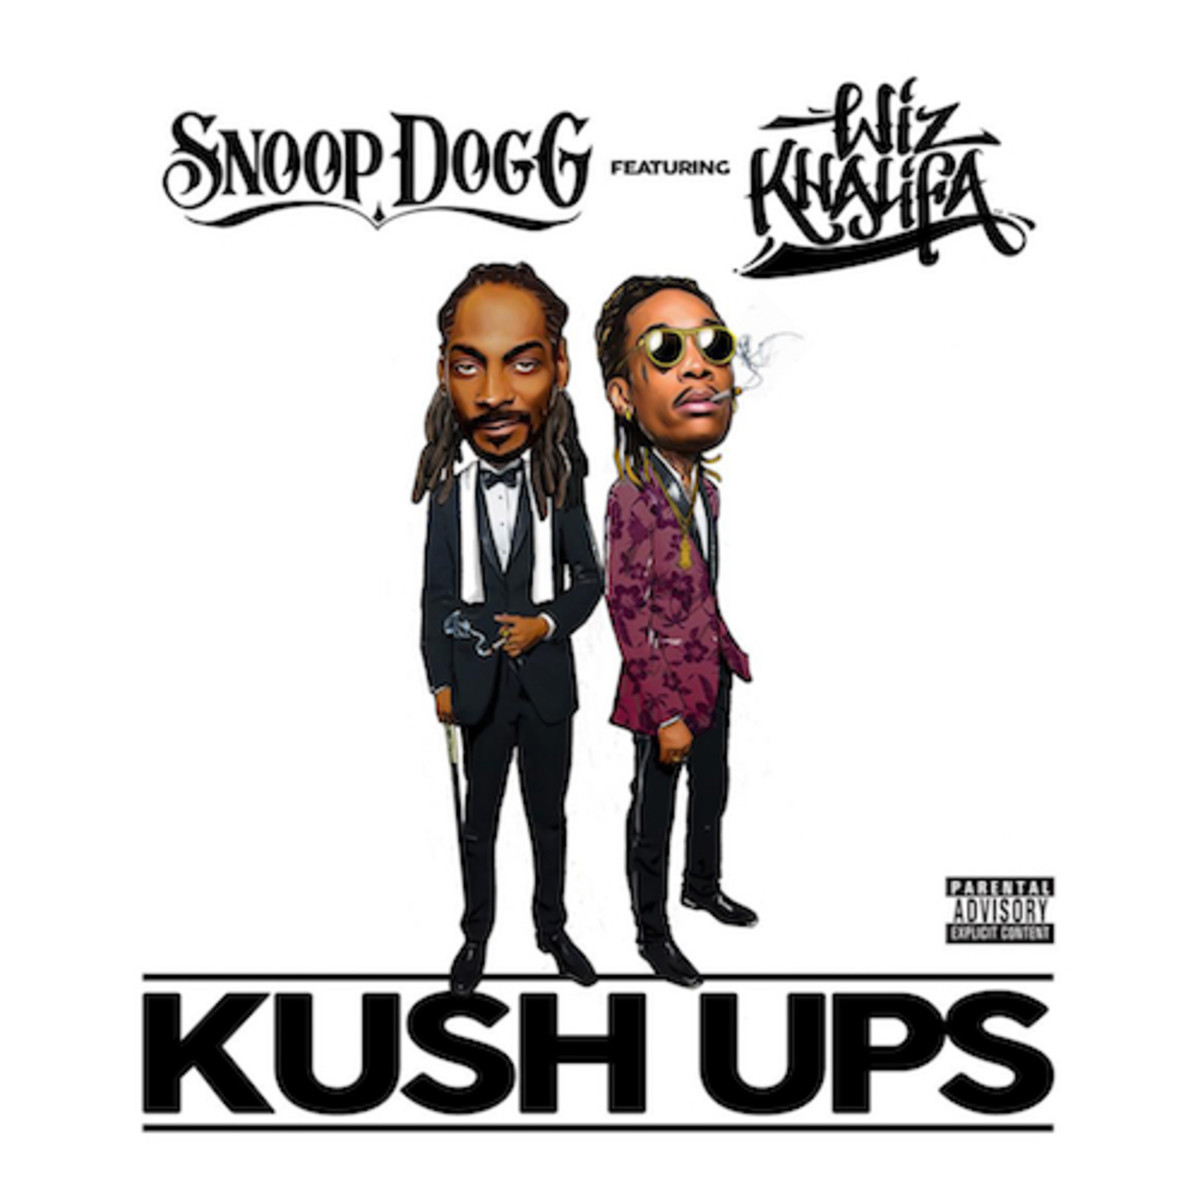 snoop-dogg-kush-ups.jpg